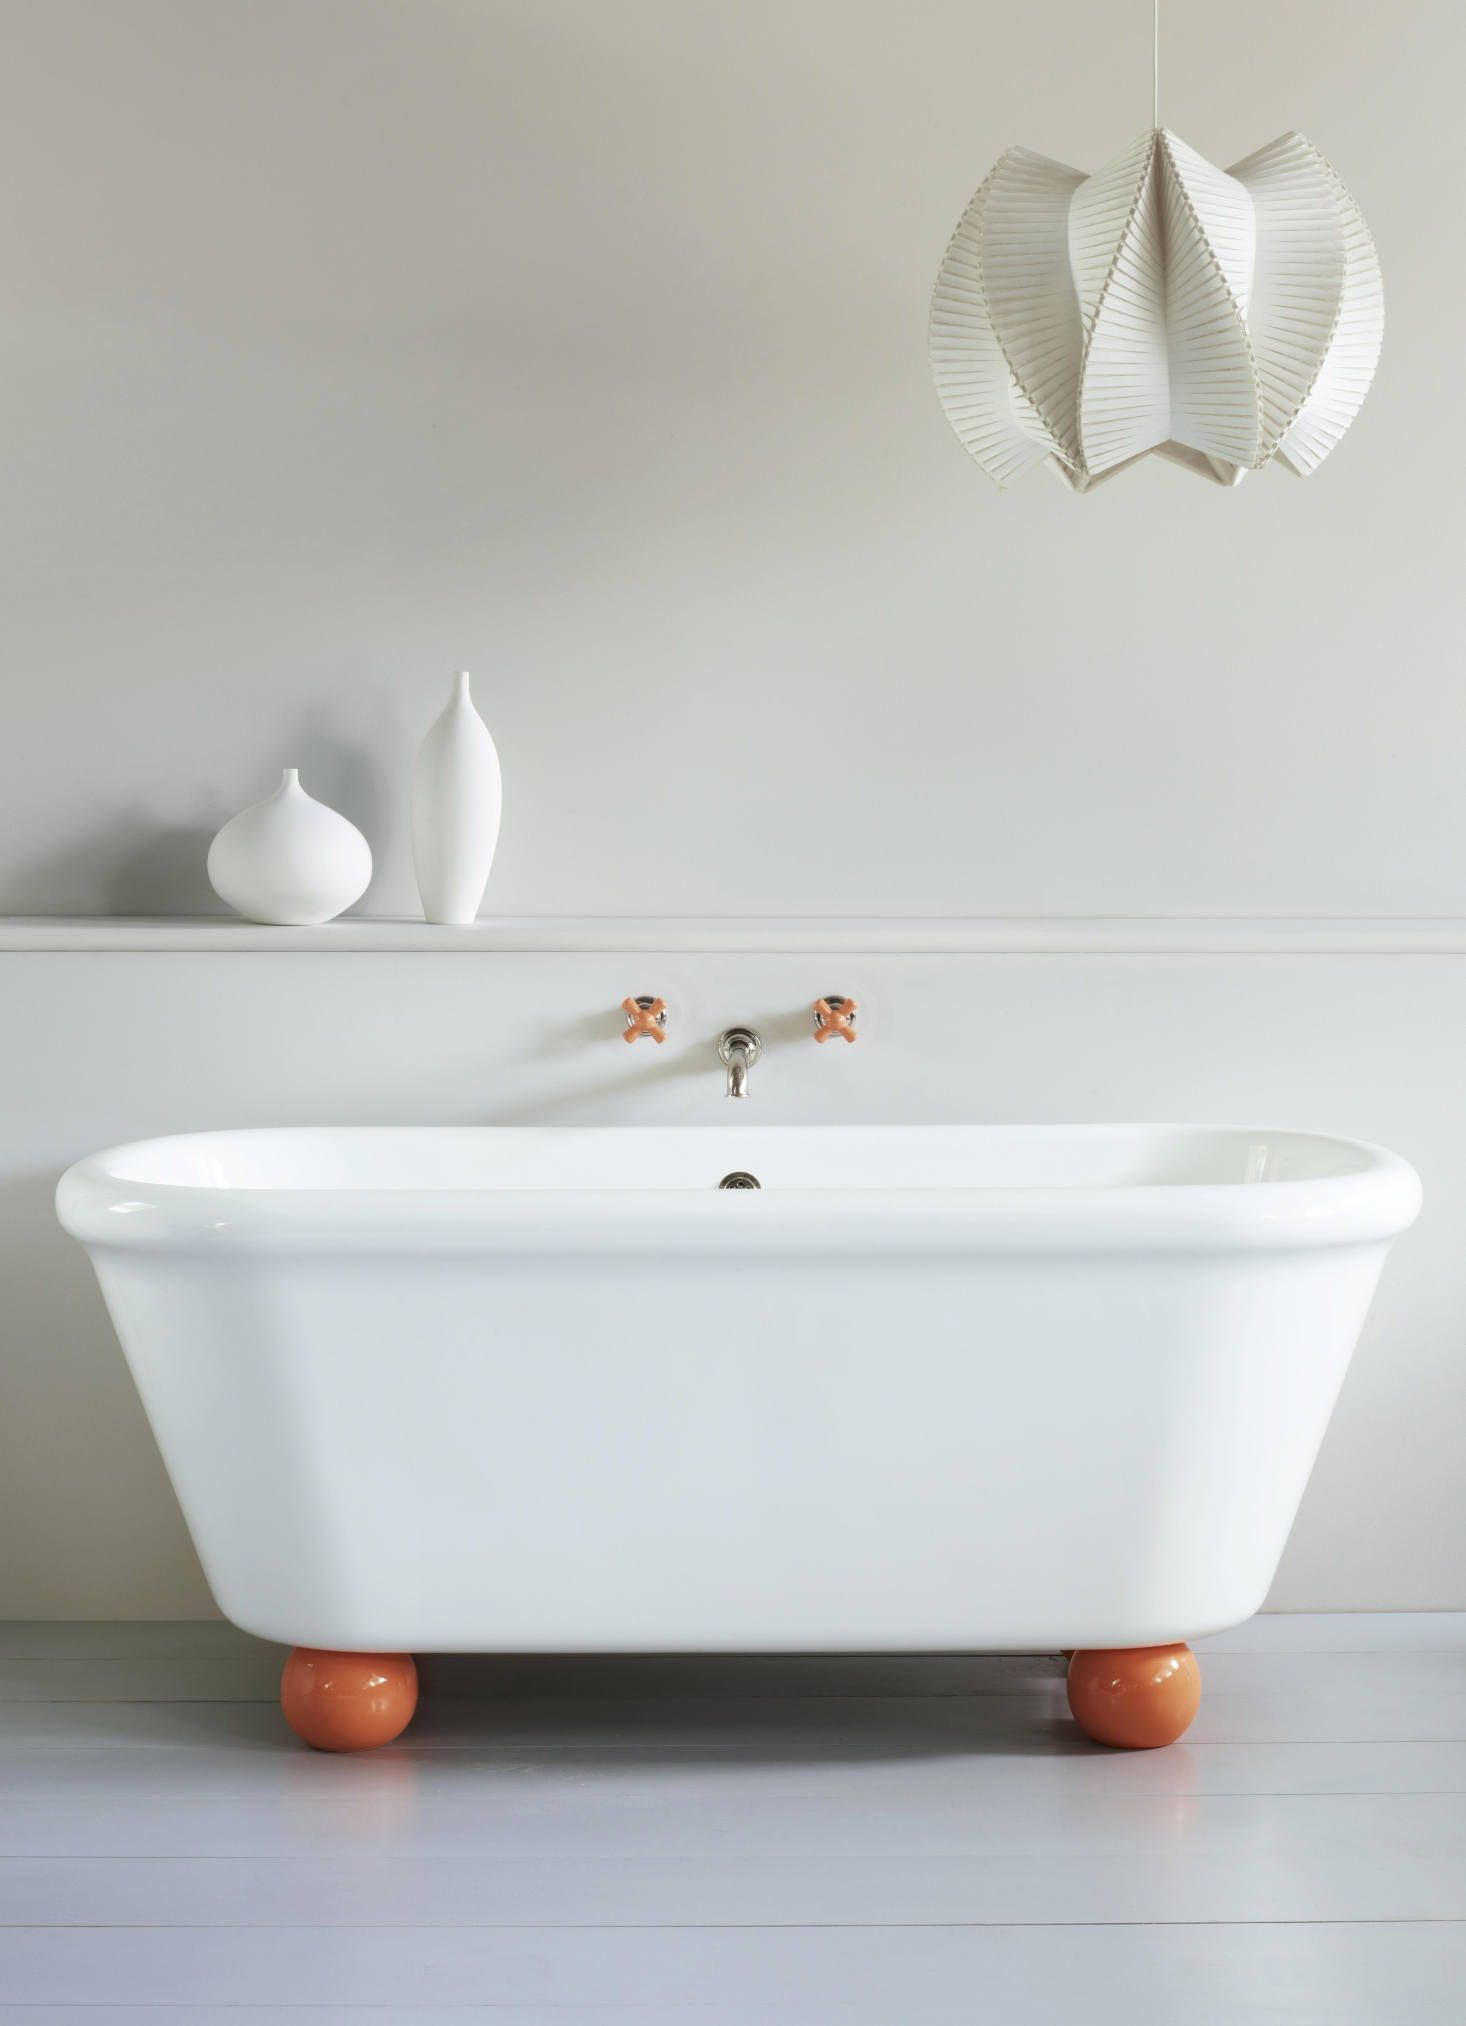 Retro Bath Fixtures in Retro Colors from the Water Monopoly | Bath ...